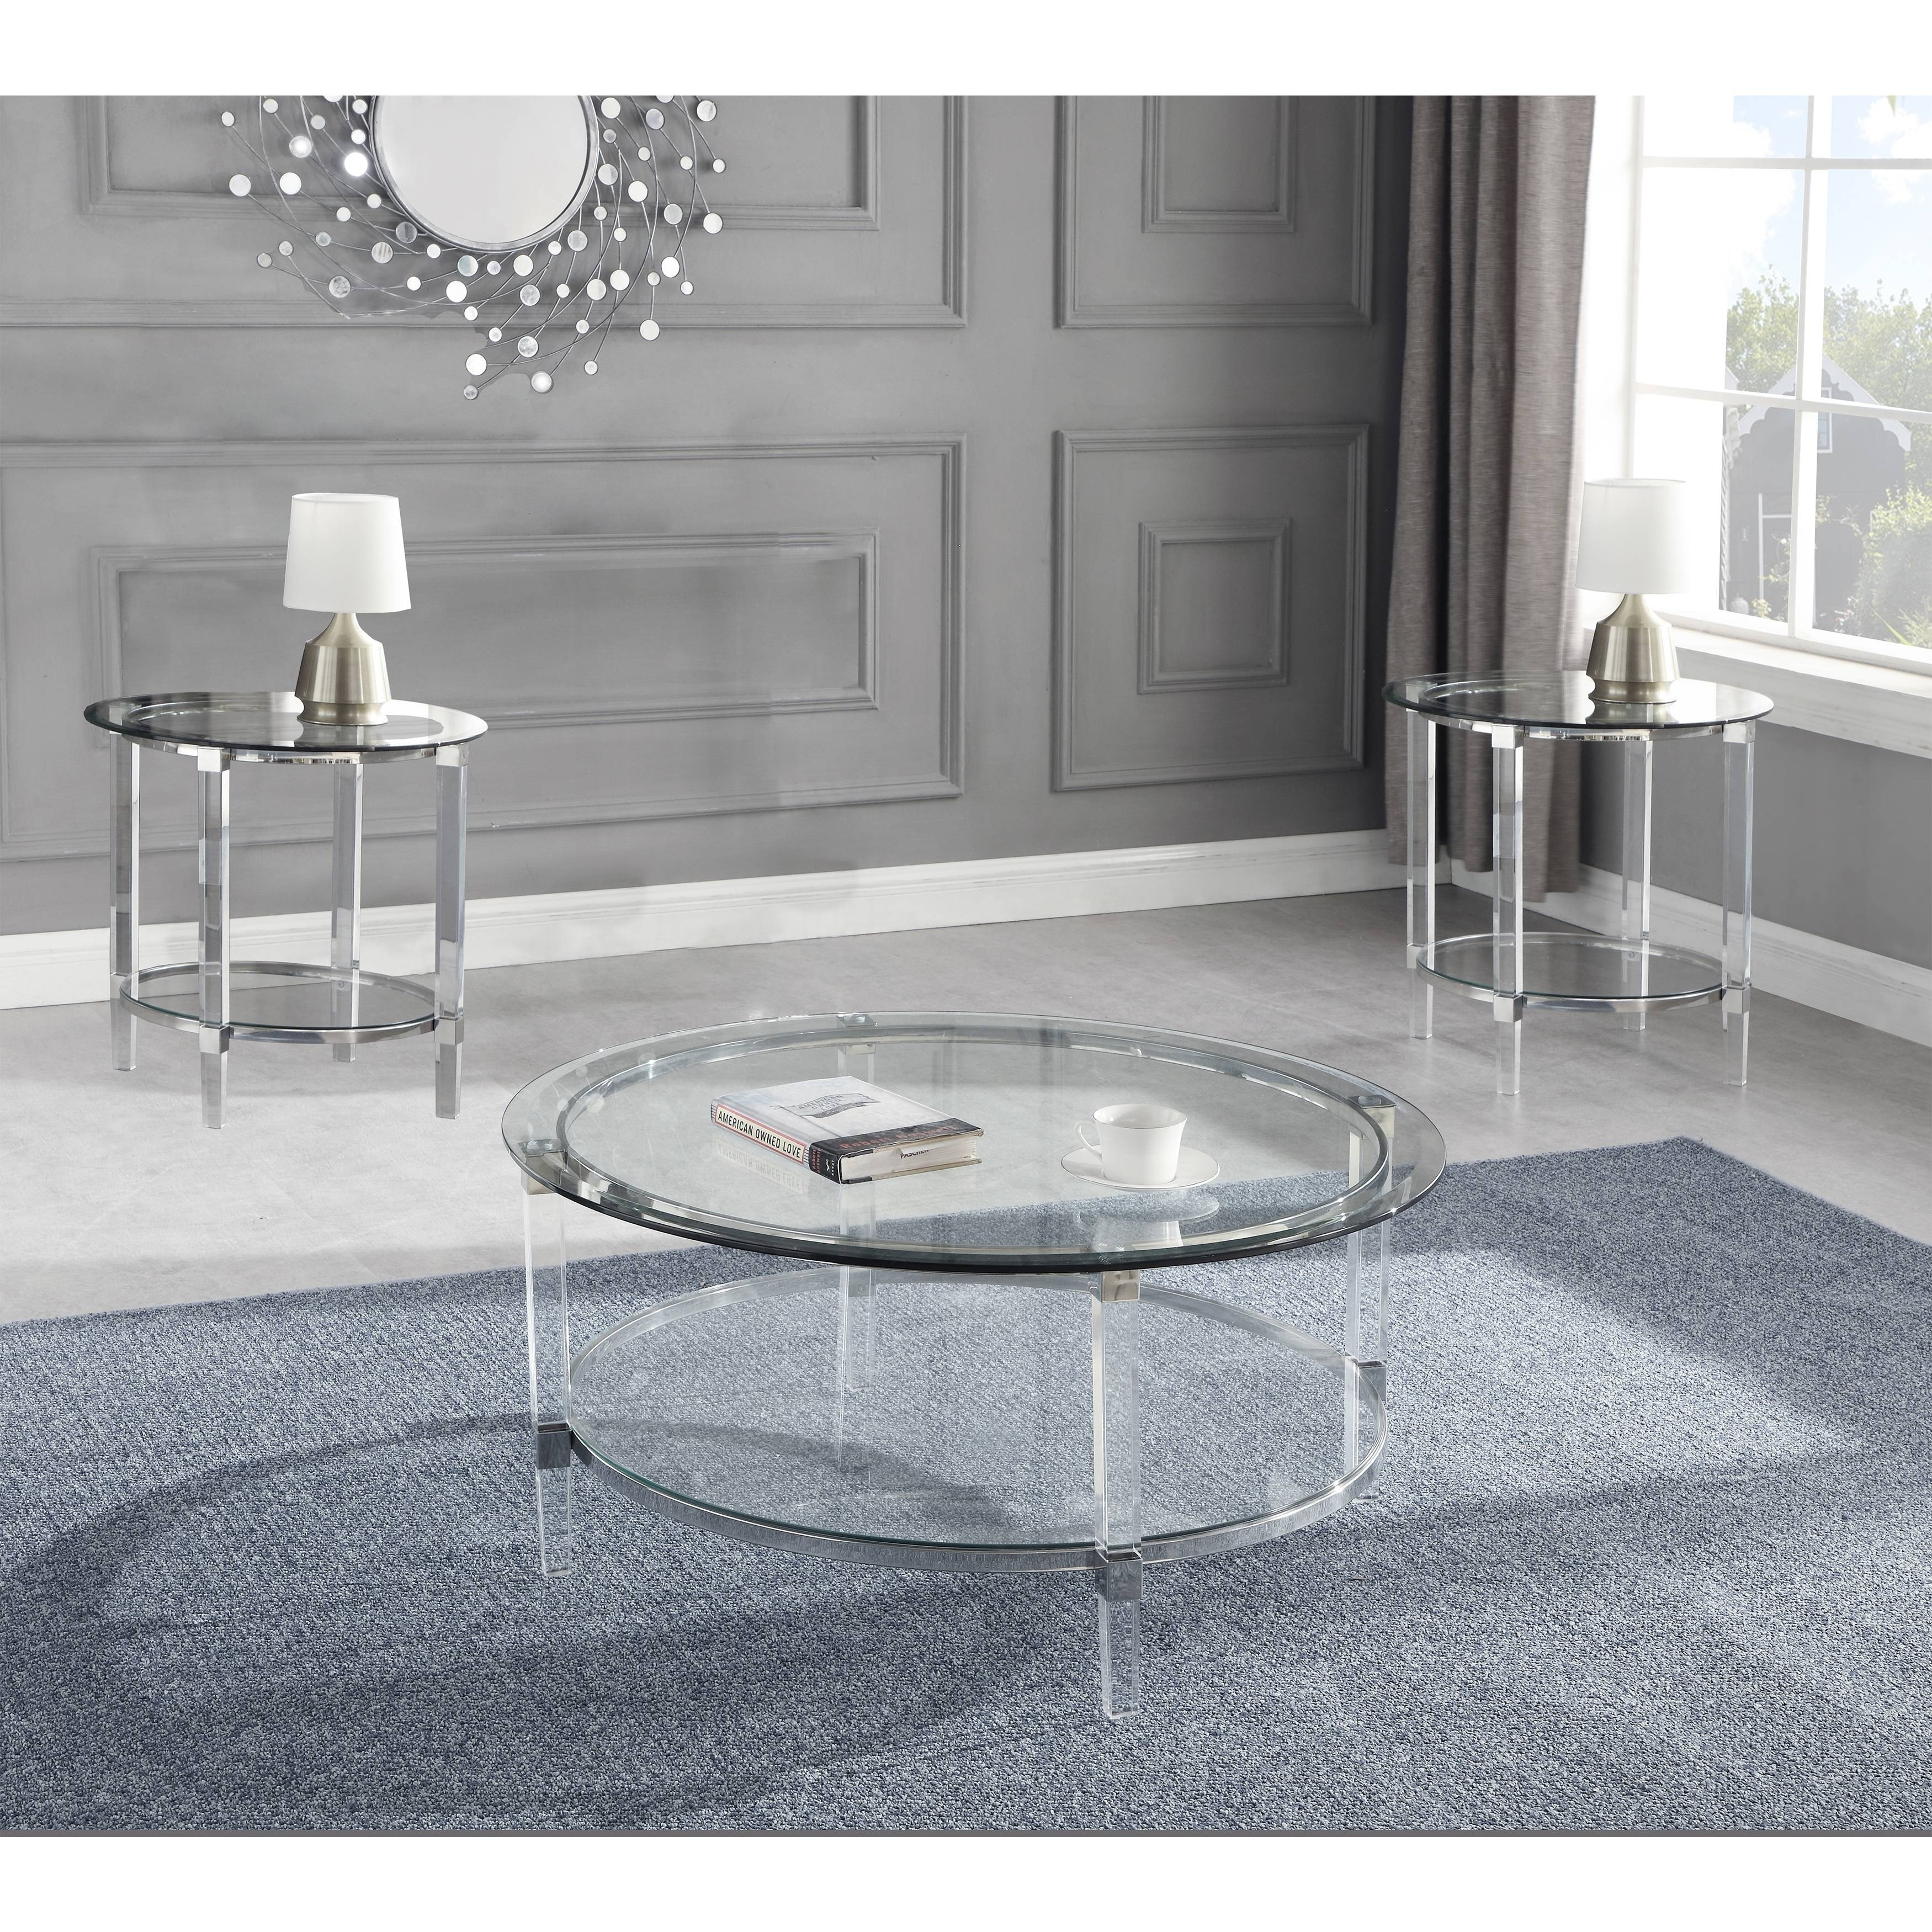 best quality furniture 3pccoffee table set glass top and acrylic legs coffee table 2 end tables